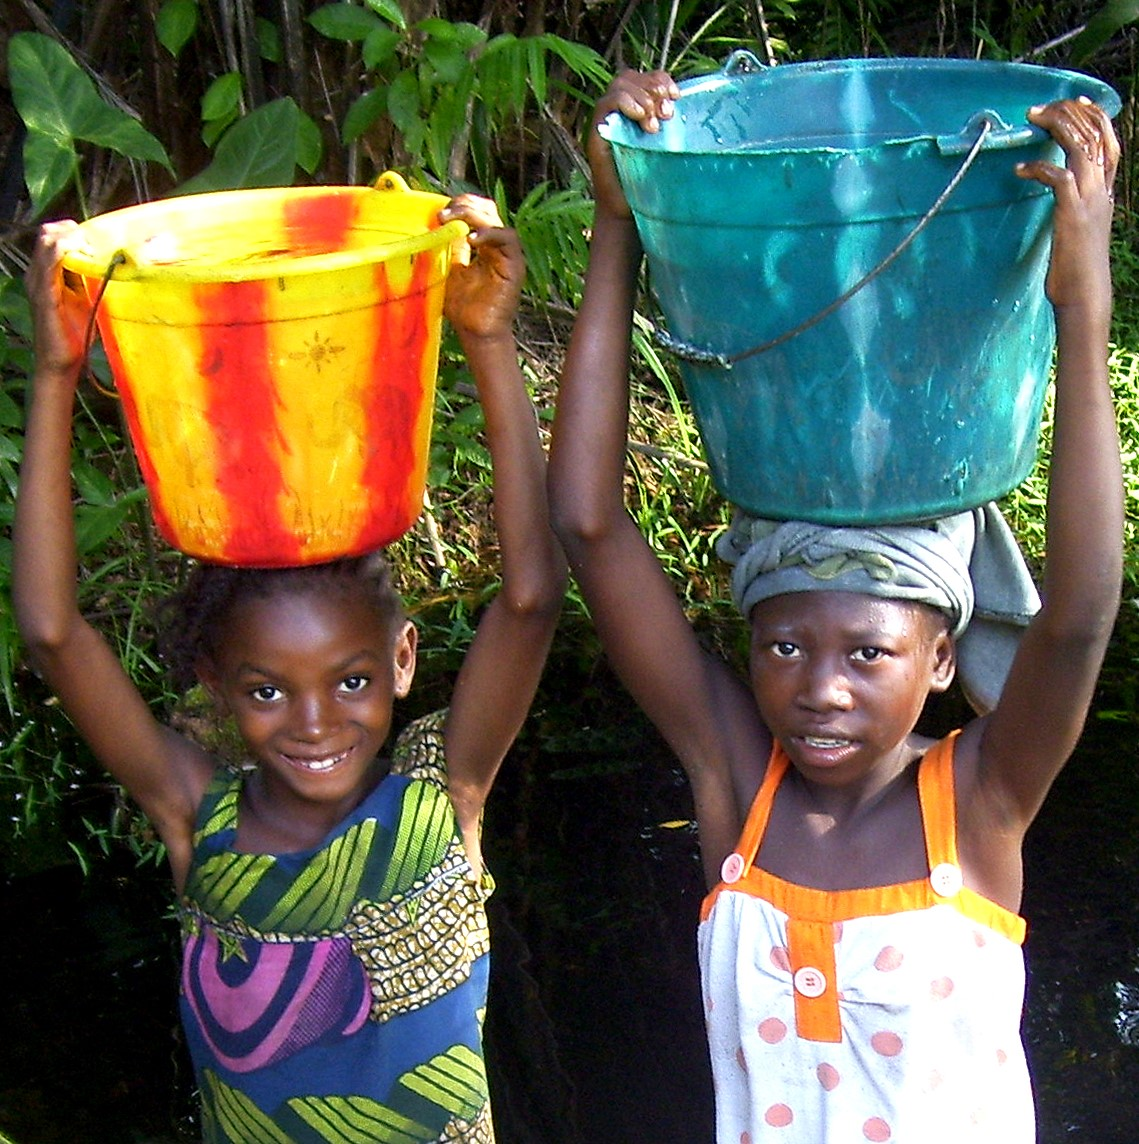 Impact Photo - Girls + buckets - Liberia.jpg 408 KB